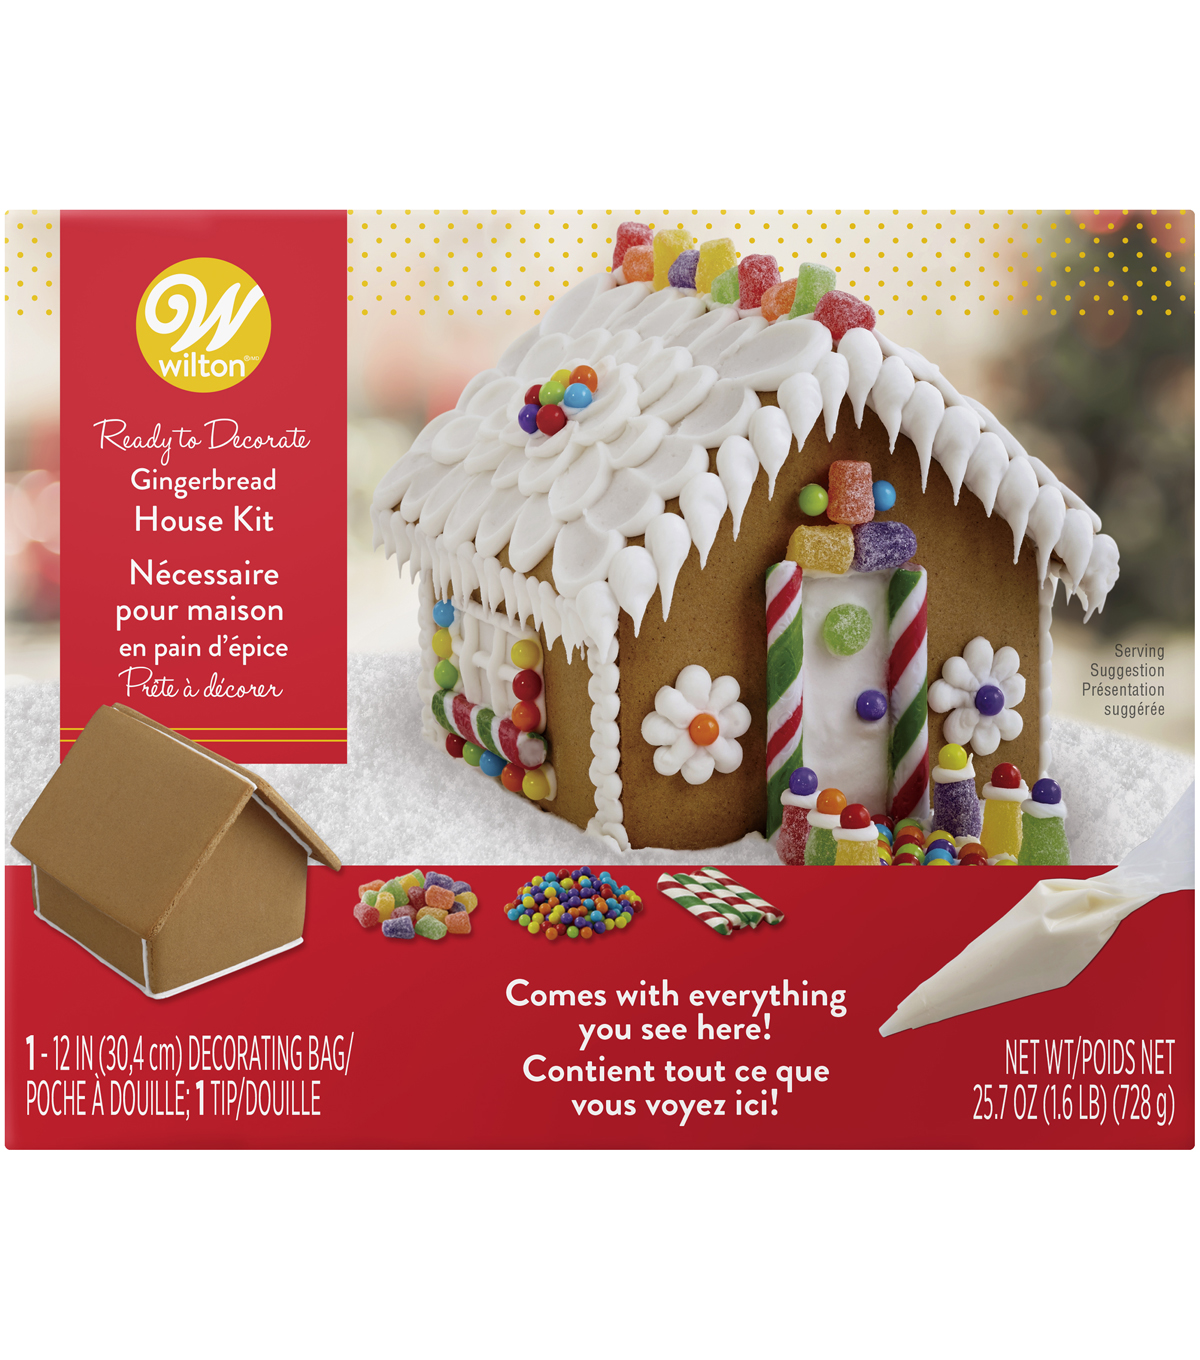 Wilton Ready to Decorate Gingerbread House Decorating Kit